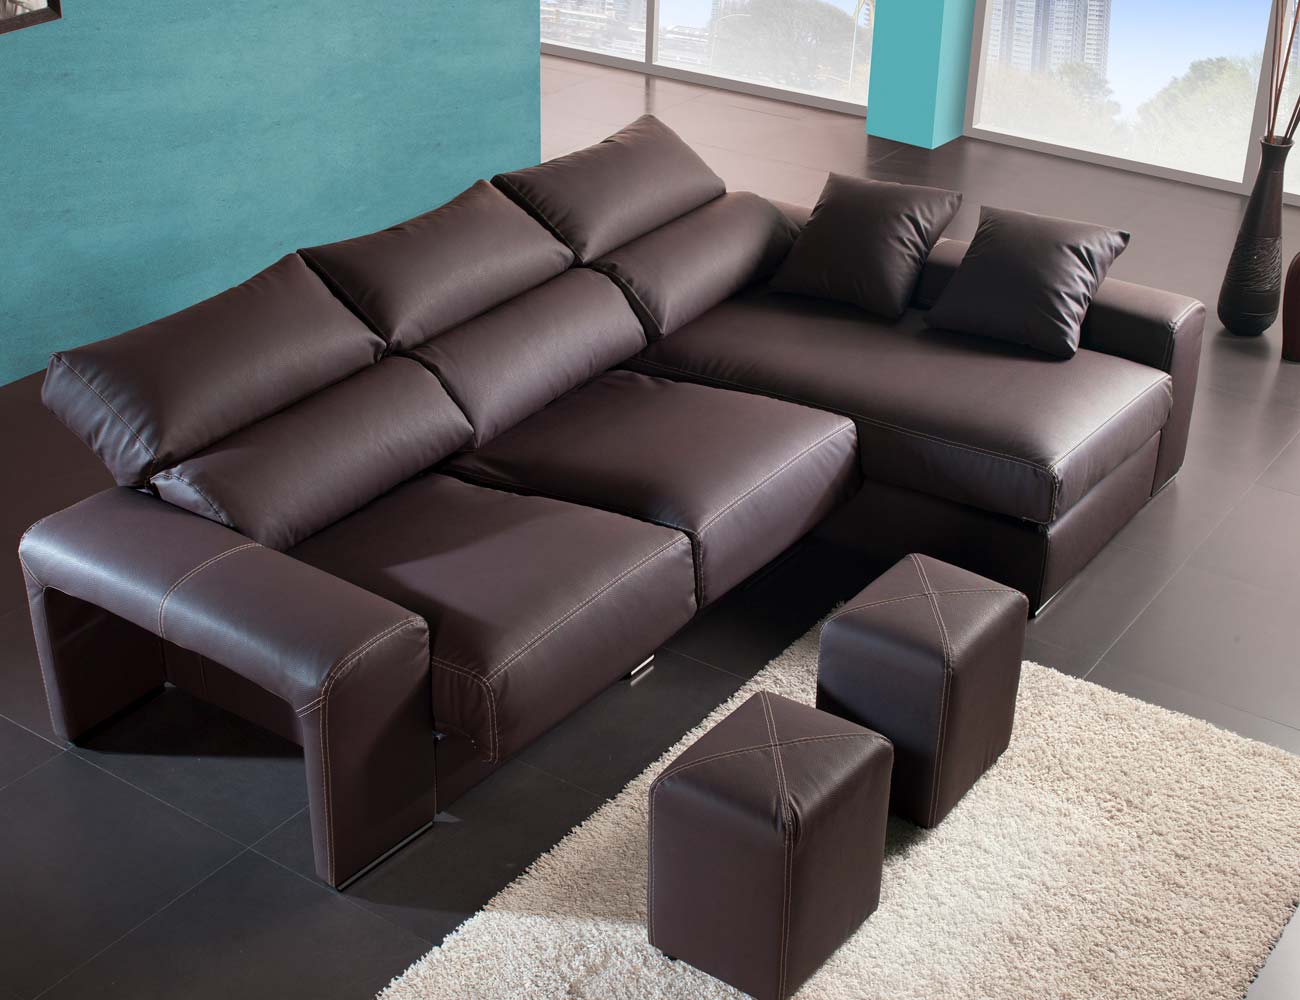 Sofa chaiselongue moderno polipiel chocolate poufs taburetes20